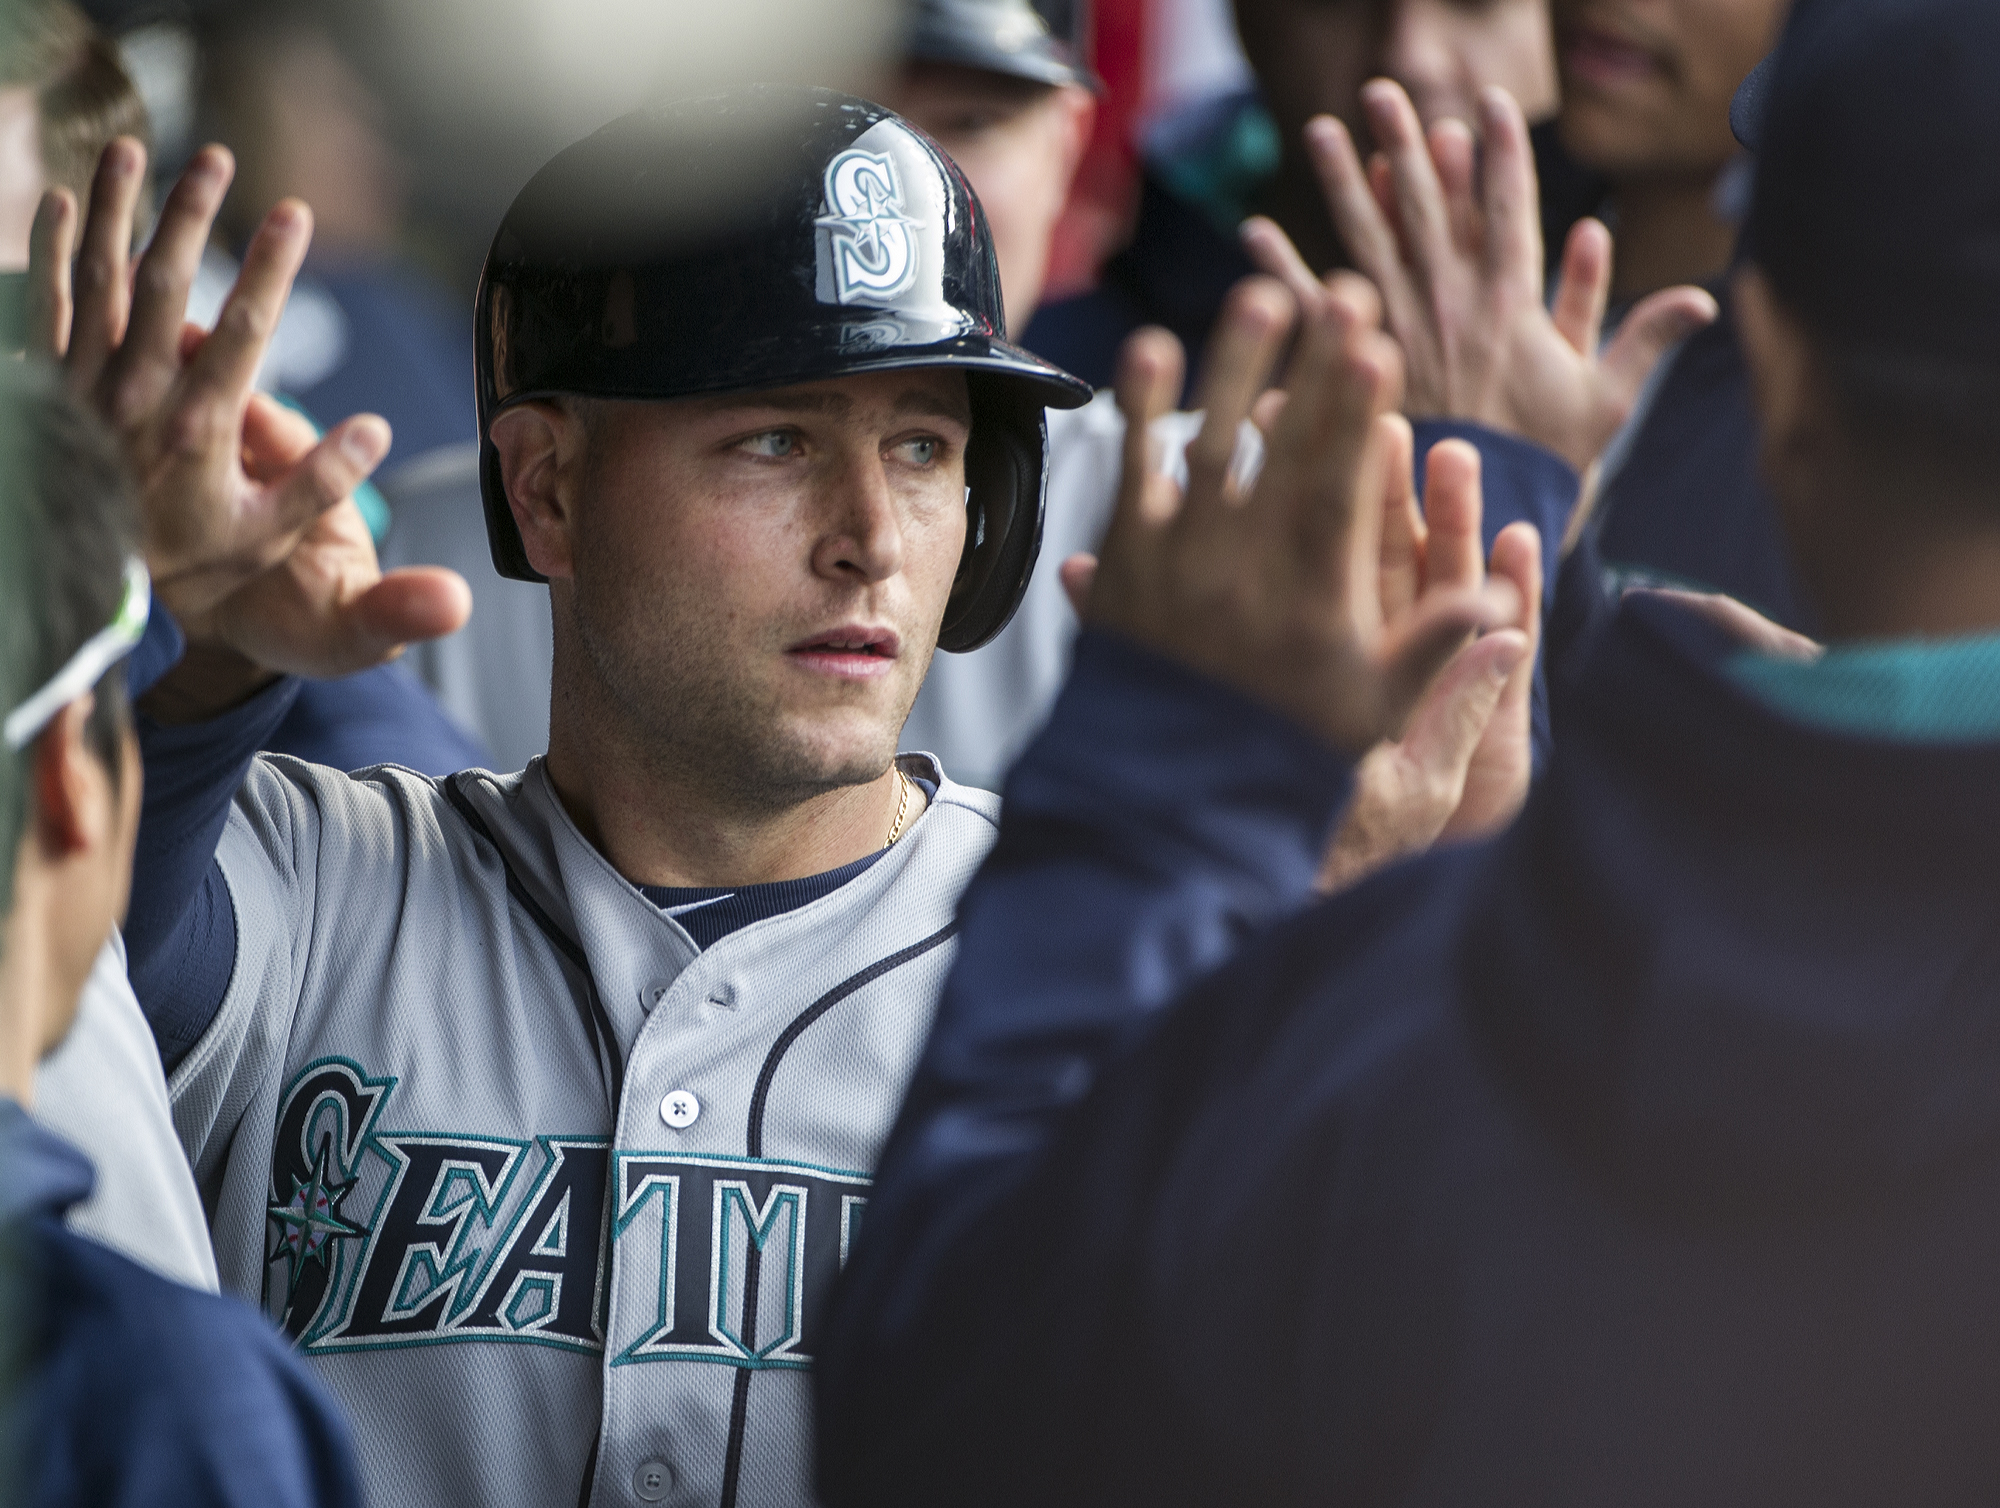 Seattle Mariners Chris Iannetta is congratulated after scoring on a hit by the Mariners Norichika Aoki during the second inning of a baseball game against the Cleveland Indians, in Cleveland, Wednesday, April 20, 2016. (AP Photo/Phil Long)